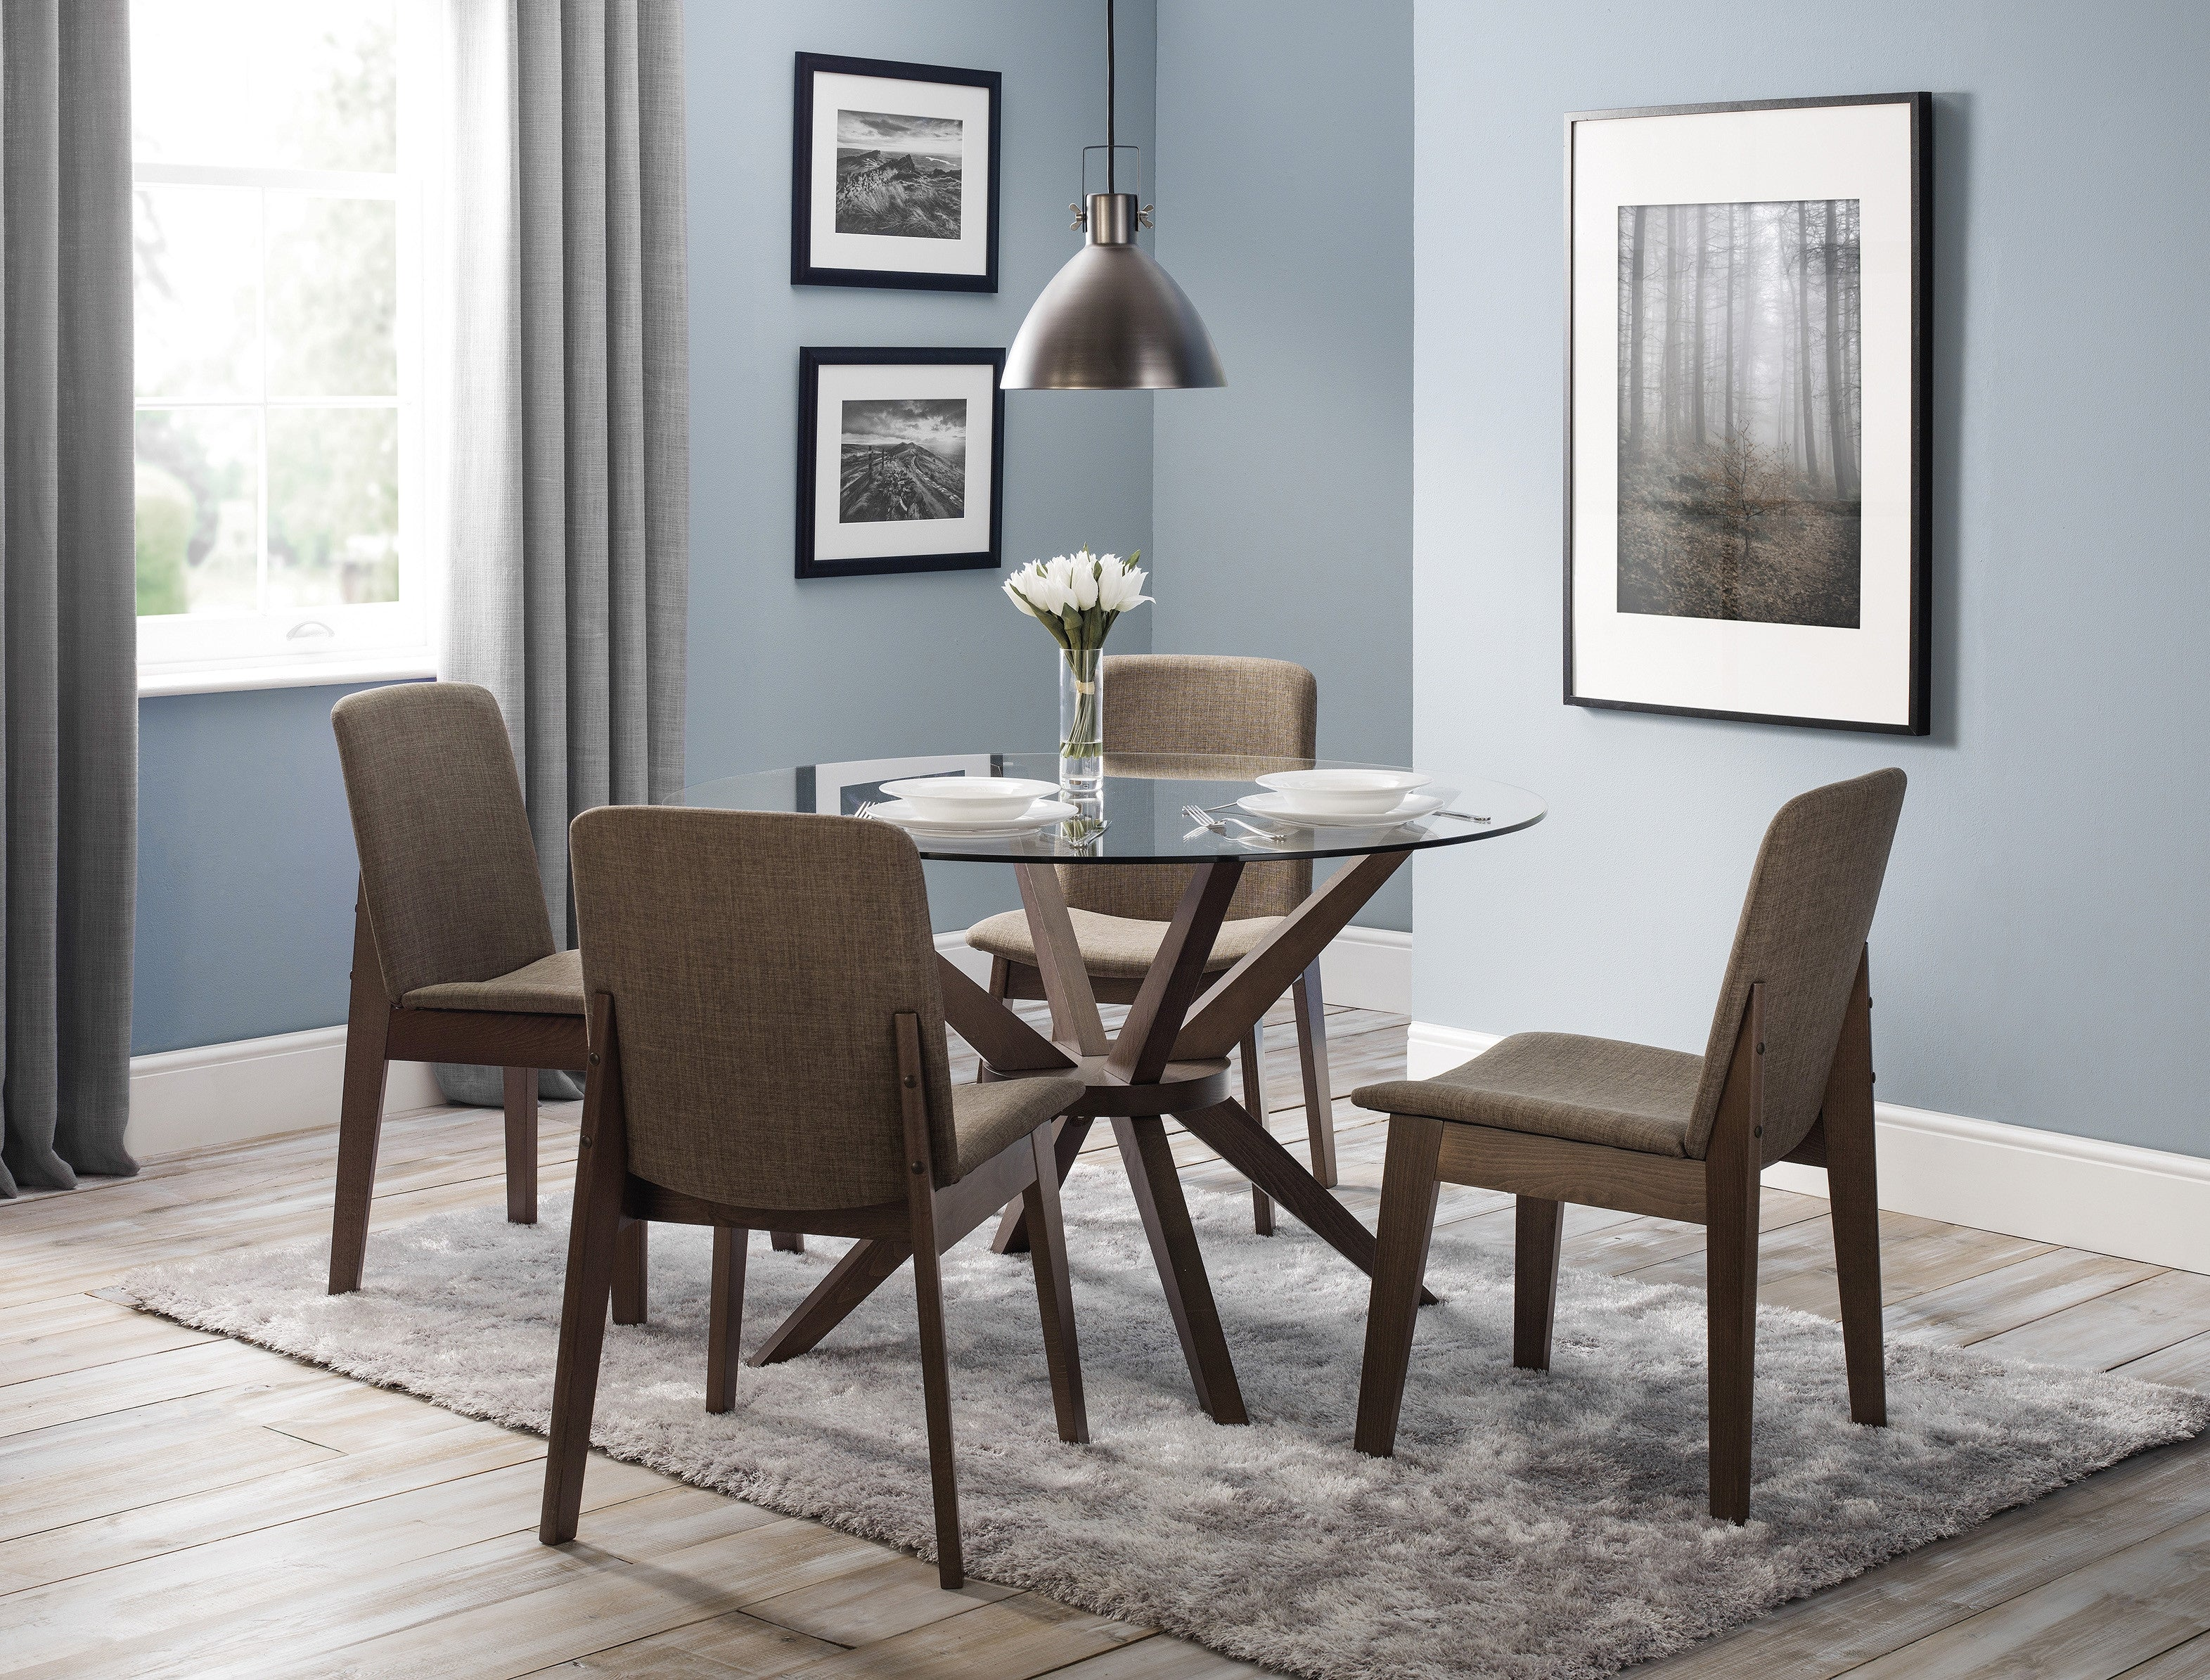 Kensington Round Glass Dining Table 4 Chairs Plfs London Property Letting Furniture